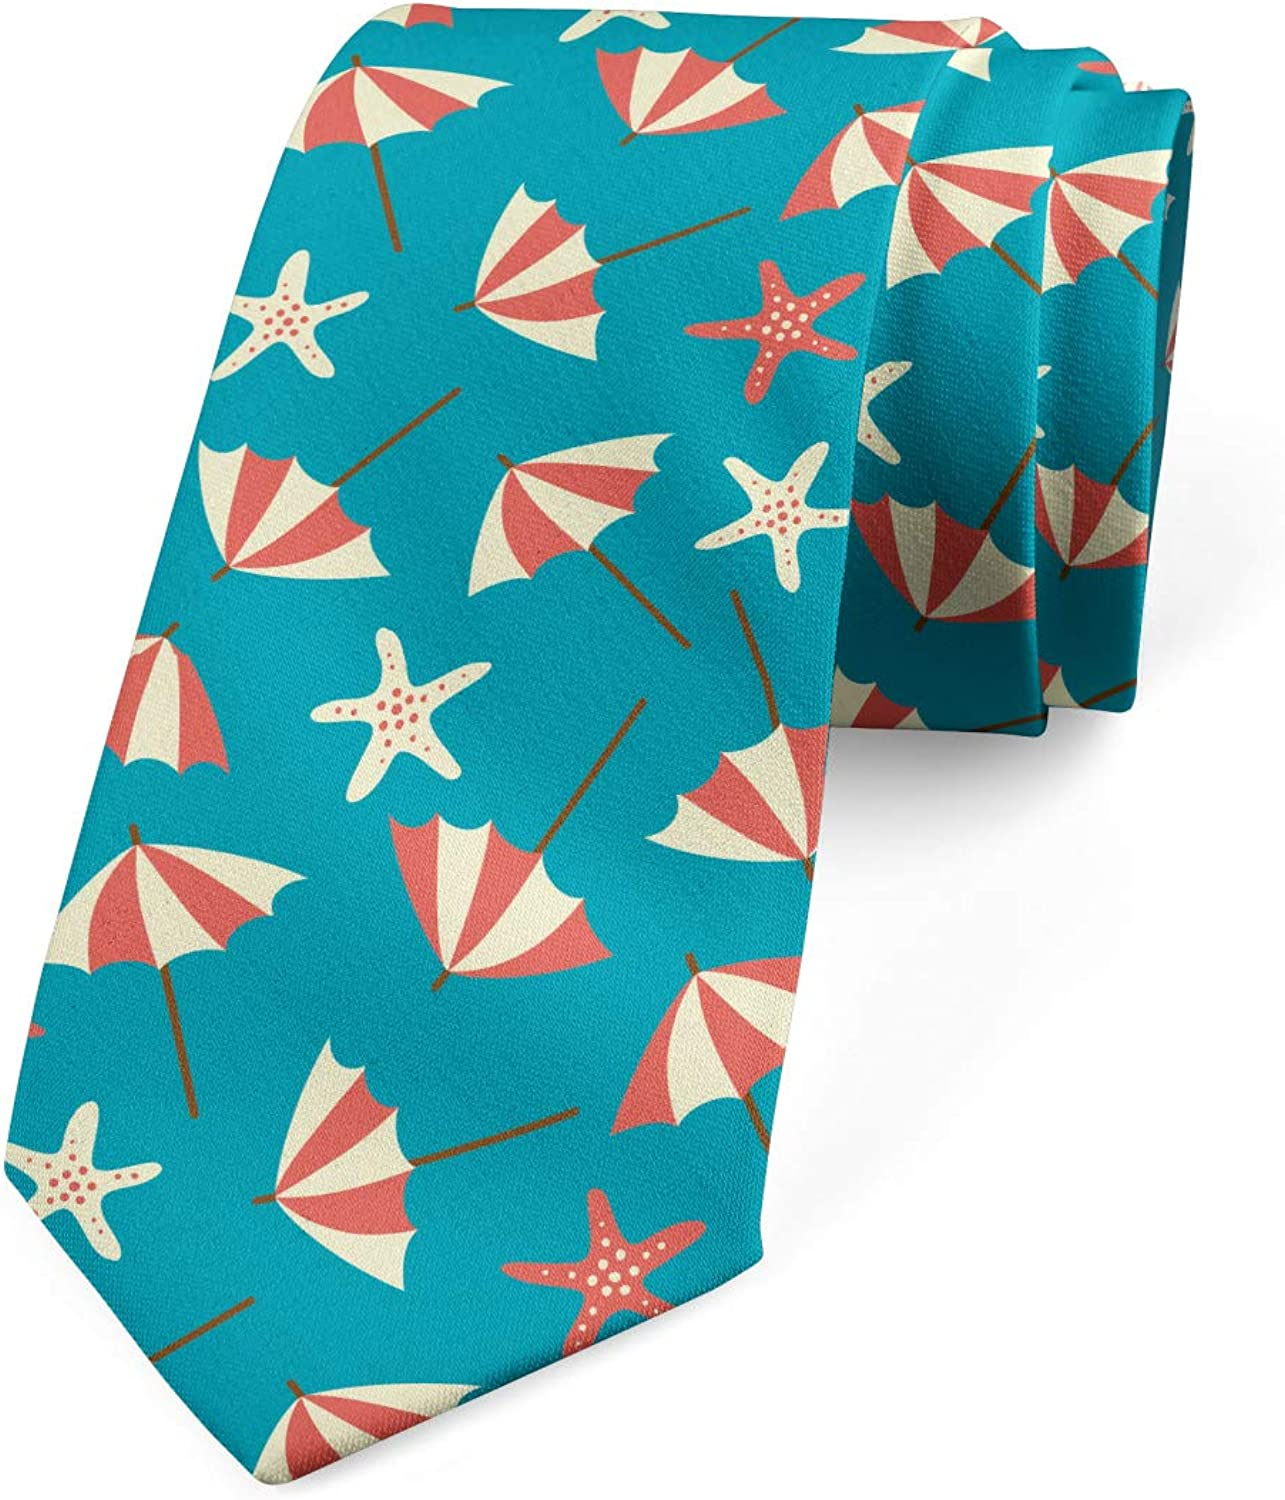 Holiday Beach with Umbrellas Petrol Blue Coral Cream Ambesonne Necktie 3.7